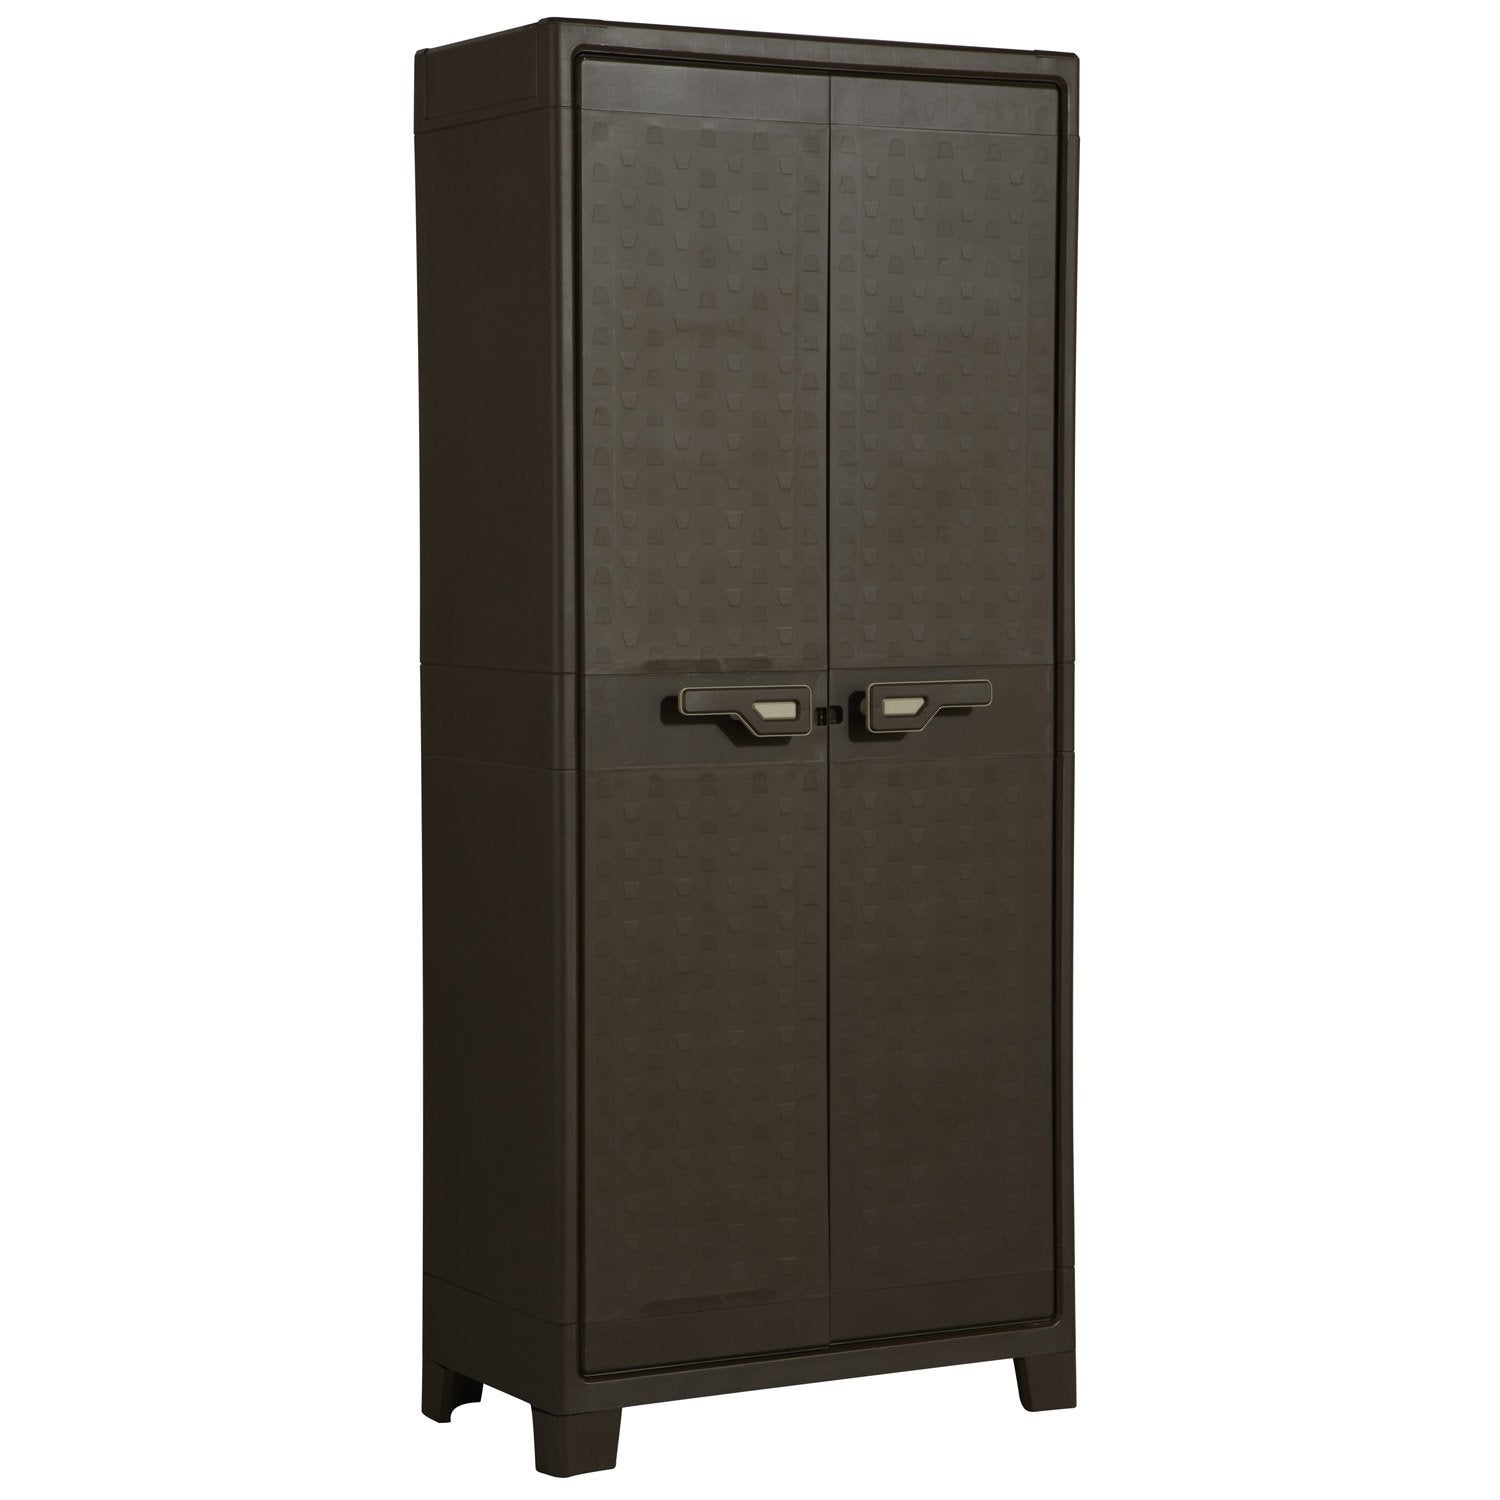 Cuisine contemporaine cuisine contemporaines - Armoires de toilettes leroy merlin ...